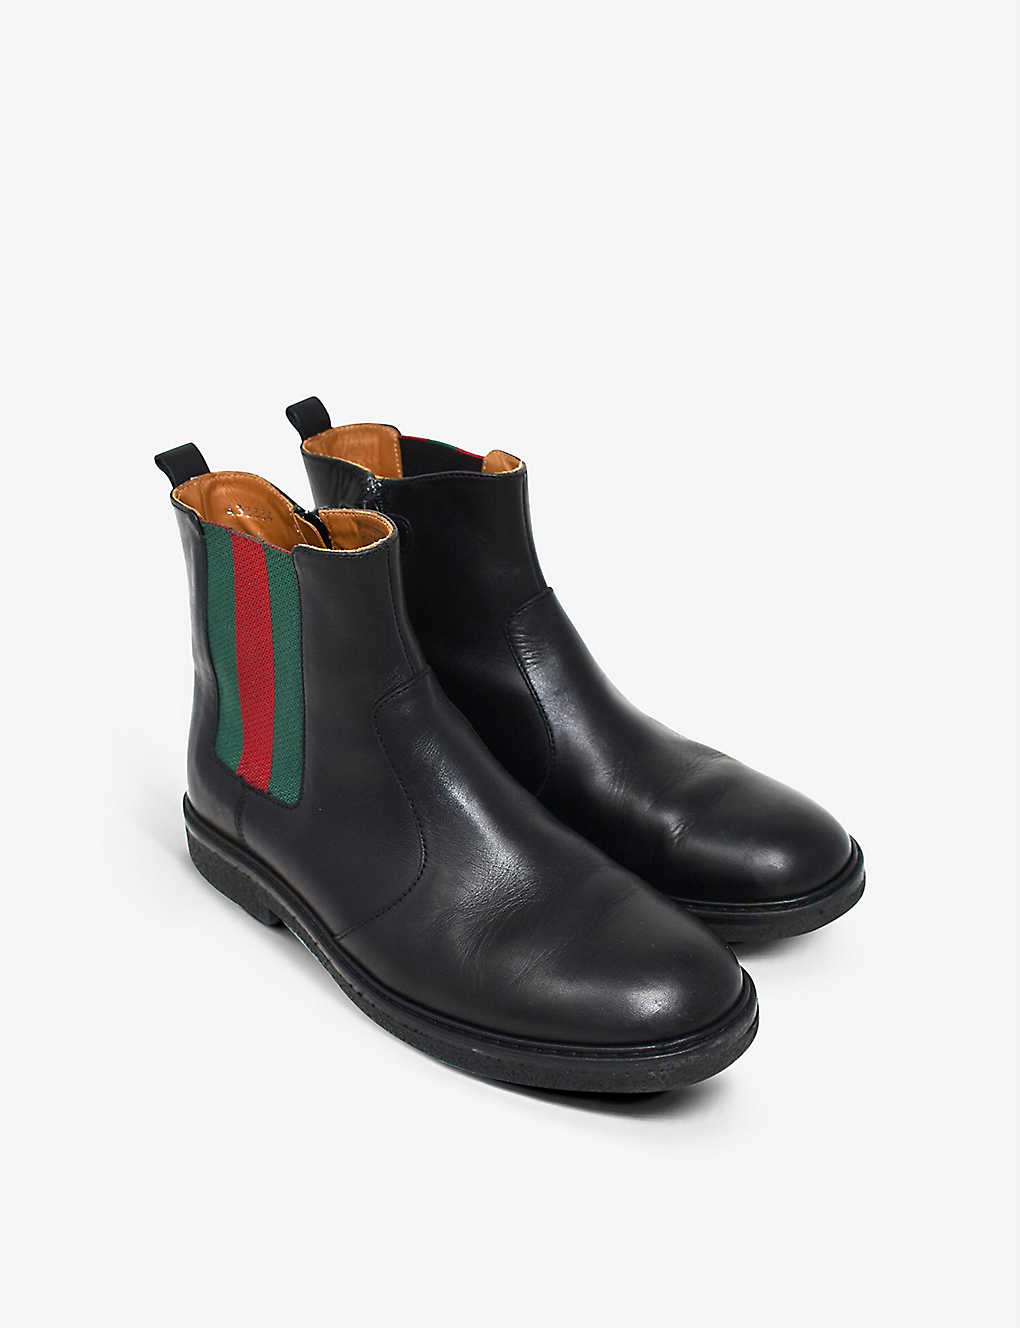 KIDSWEAR COLLECTIVE: Pre-loved Gucci leather Chelsea boots